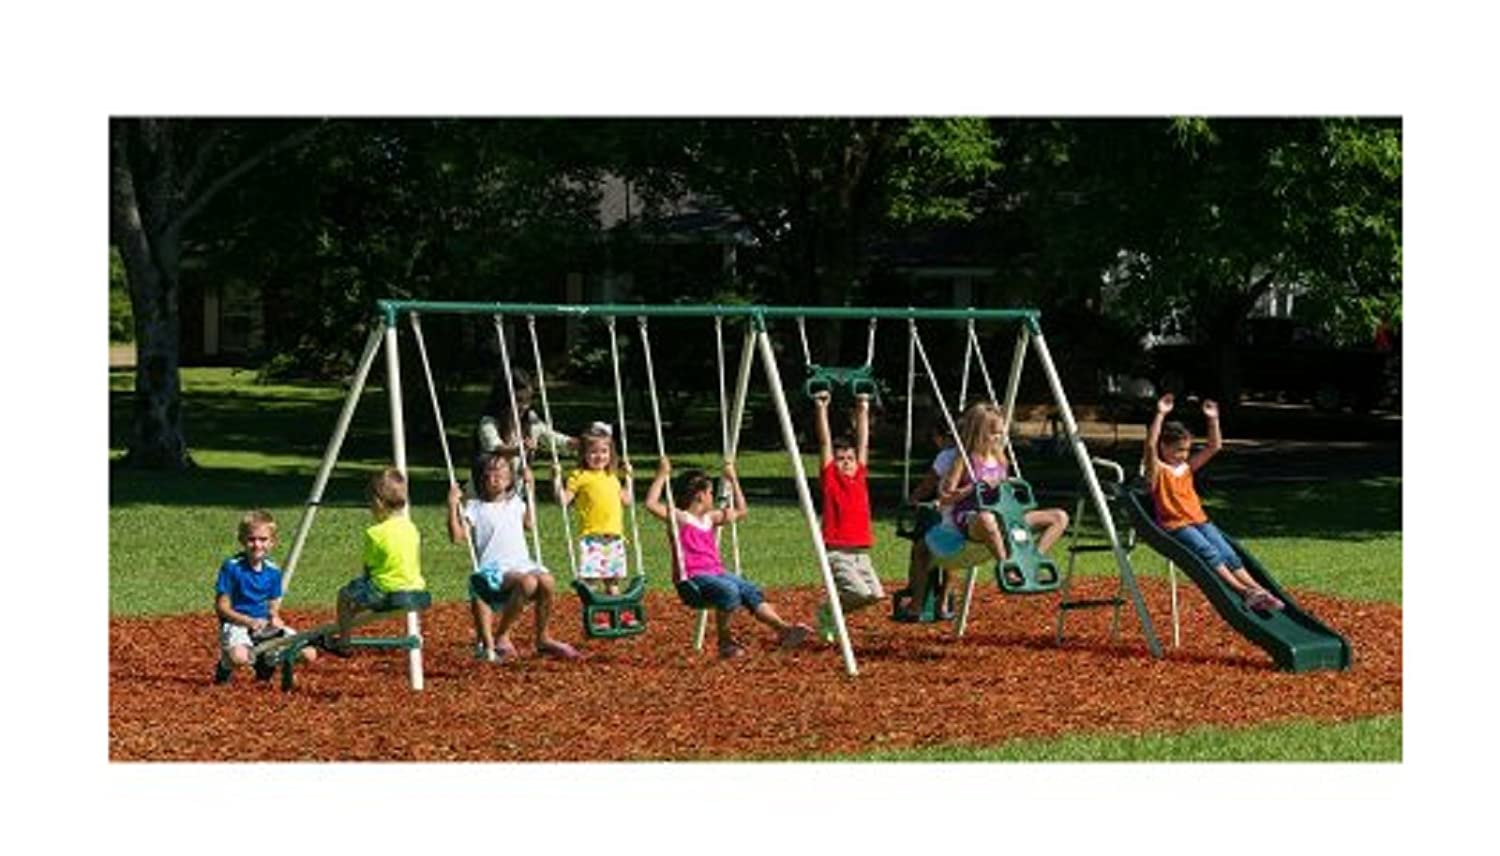 Amazon.com: Flexible Flyer Big Adventure Metal Swing Set Includes Slide,  Rocket Rider, Swings, Trapeze , Seesaw: Toys & Games